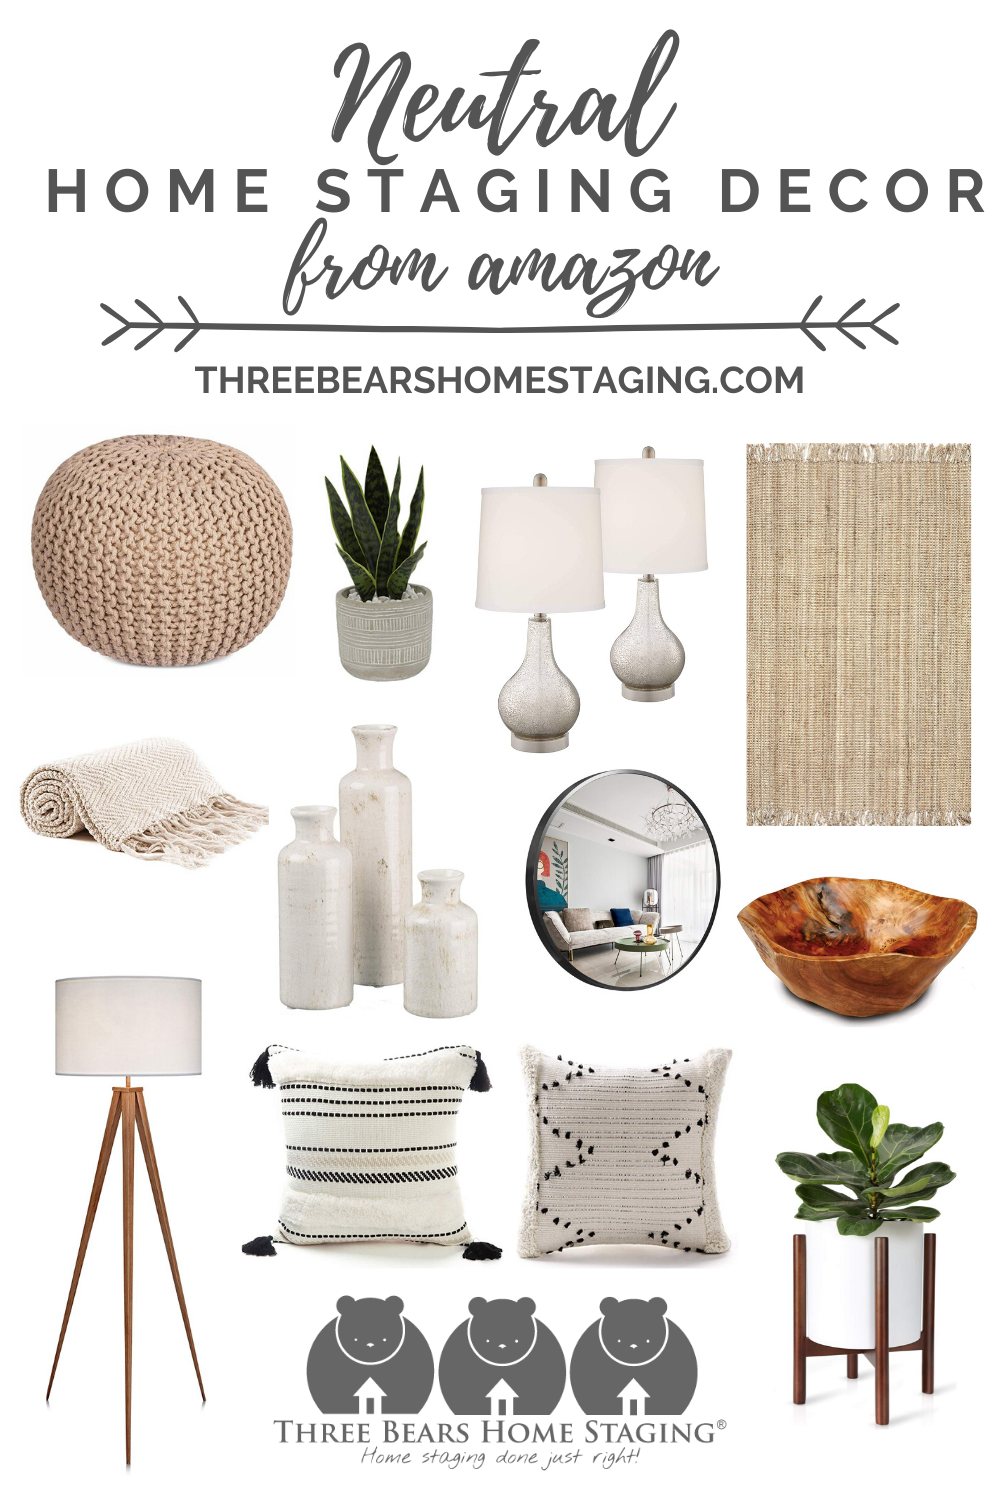 """Did you know that rooms that have too many personal items, too much furniture, or even too much """"color clutter"""" can actually make your home appear smaller, more cramped, and less inviting to potential buyers?...  #homestaging #amazon #homedecor #neutral"""